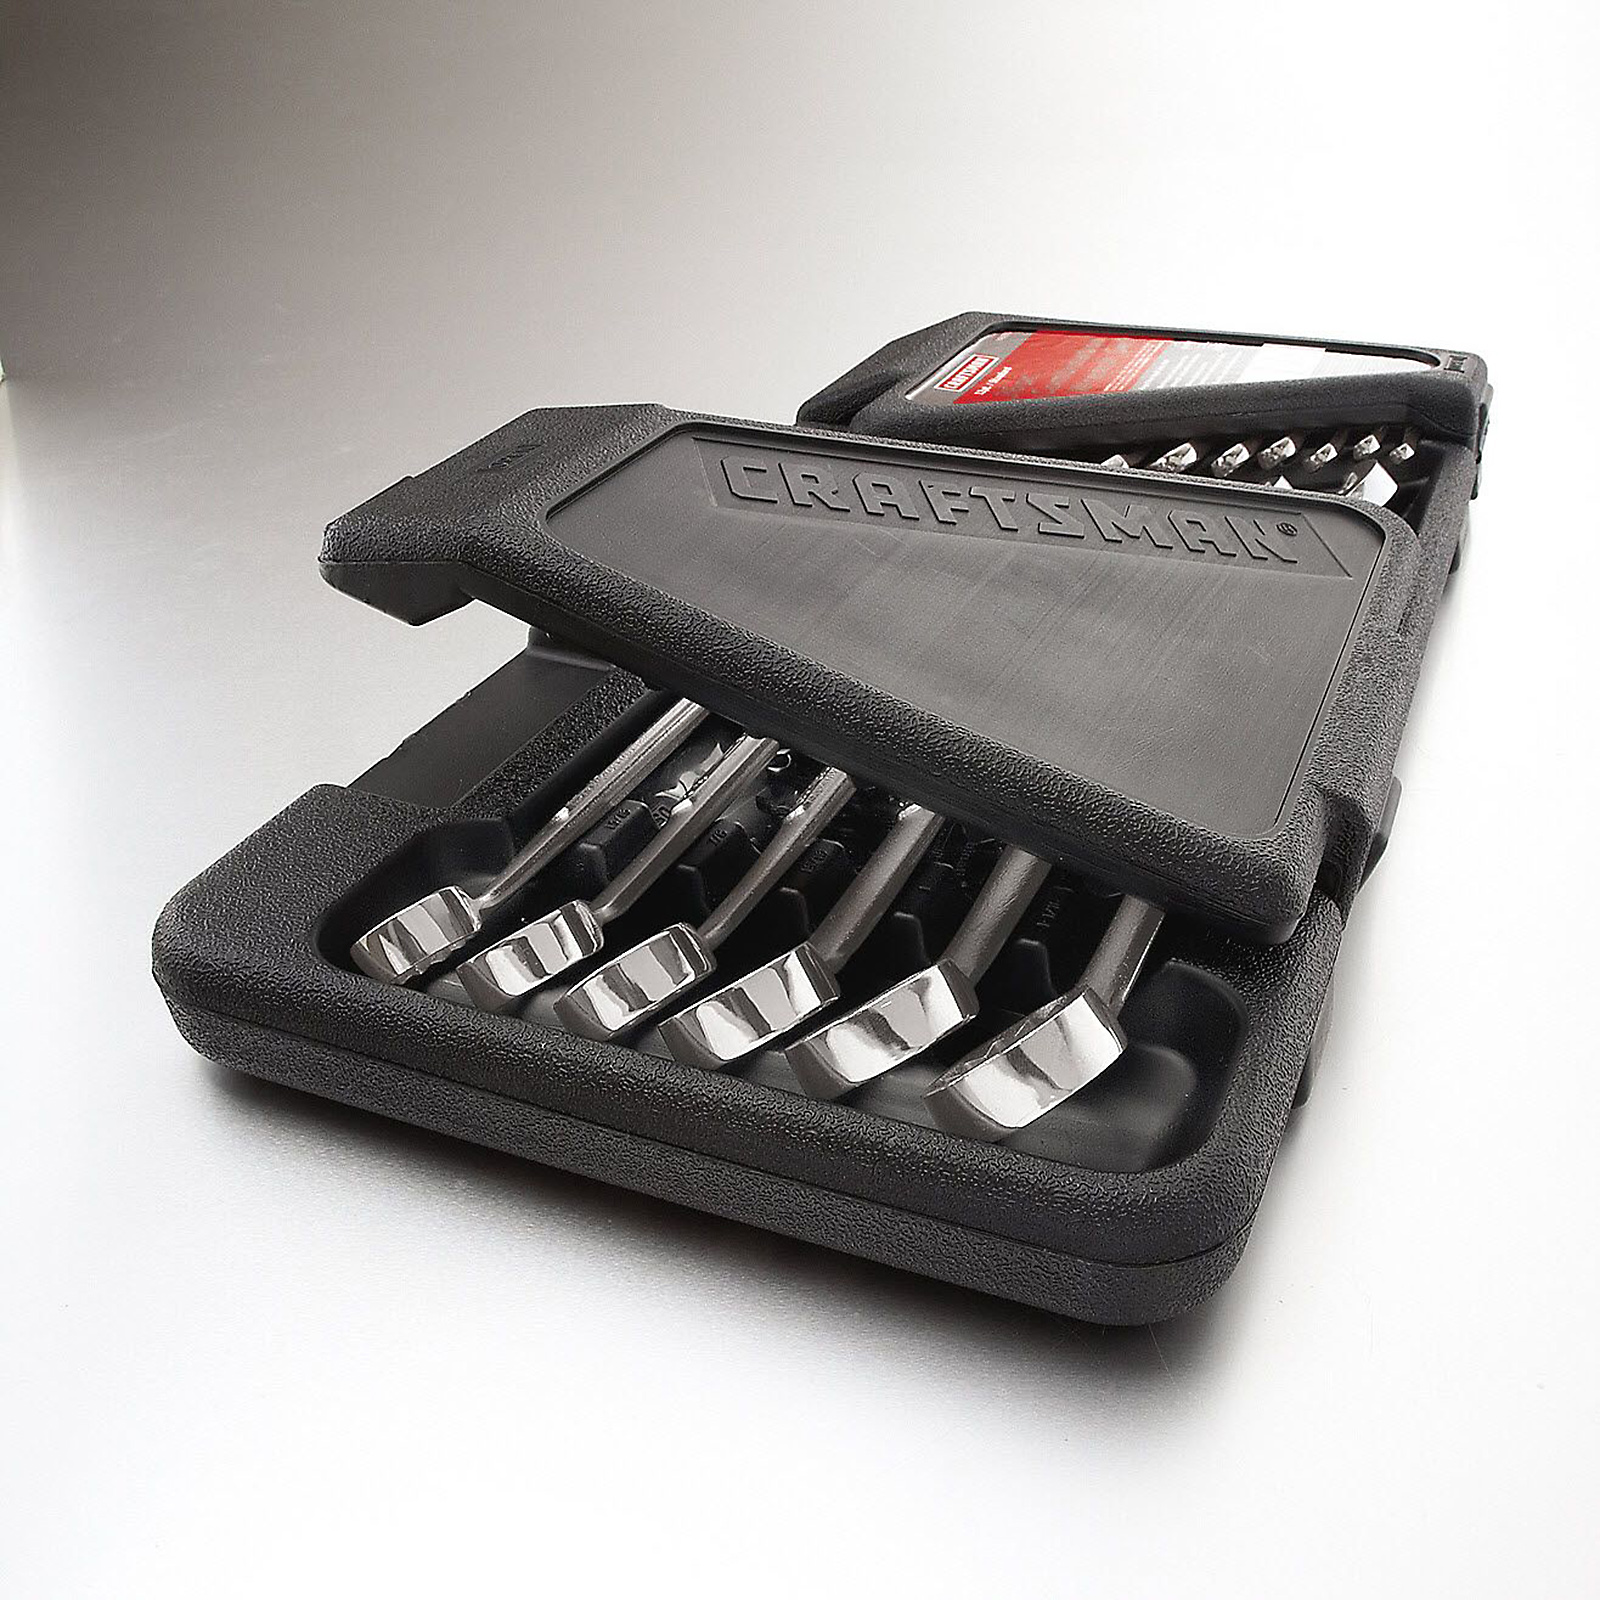 Craftsman 26 pc. Standard 12 pt. Combination Wrench Set